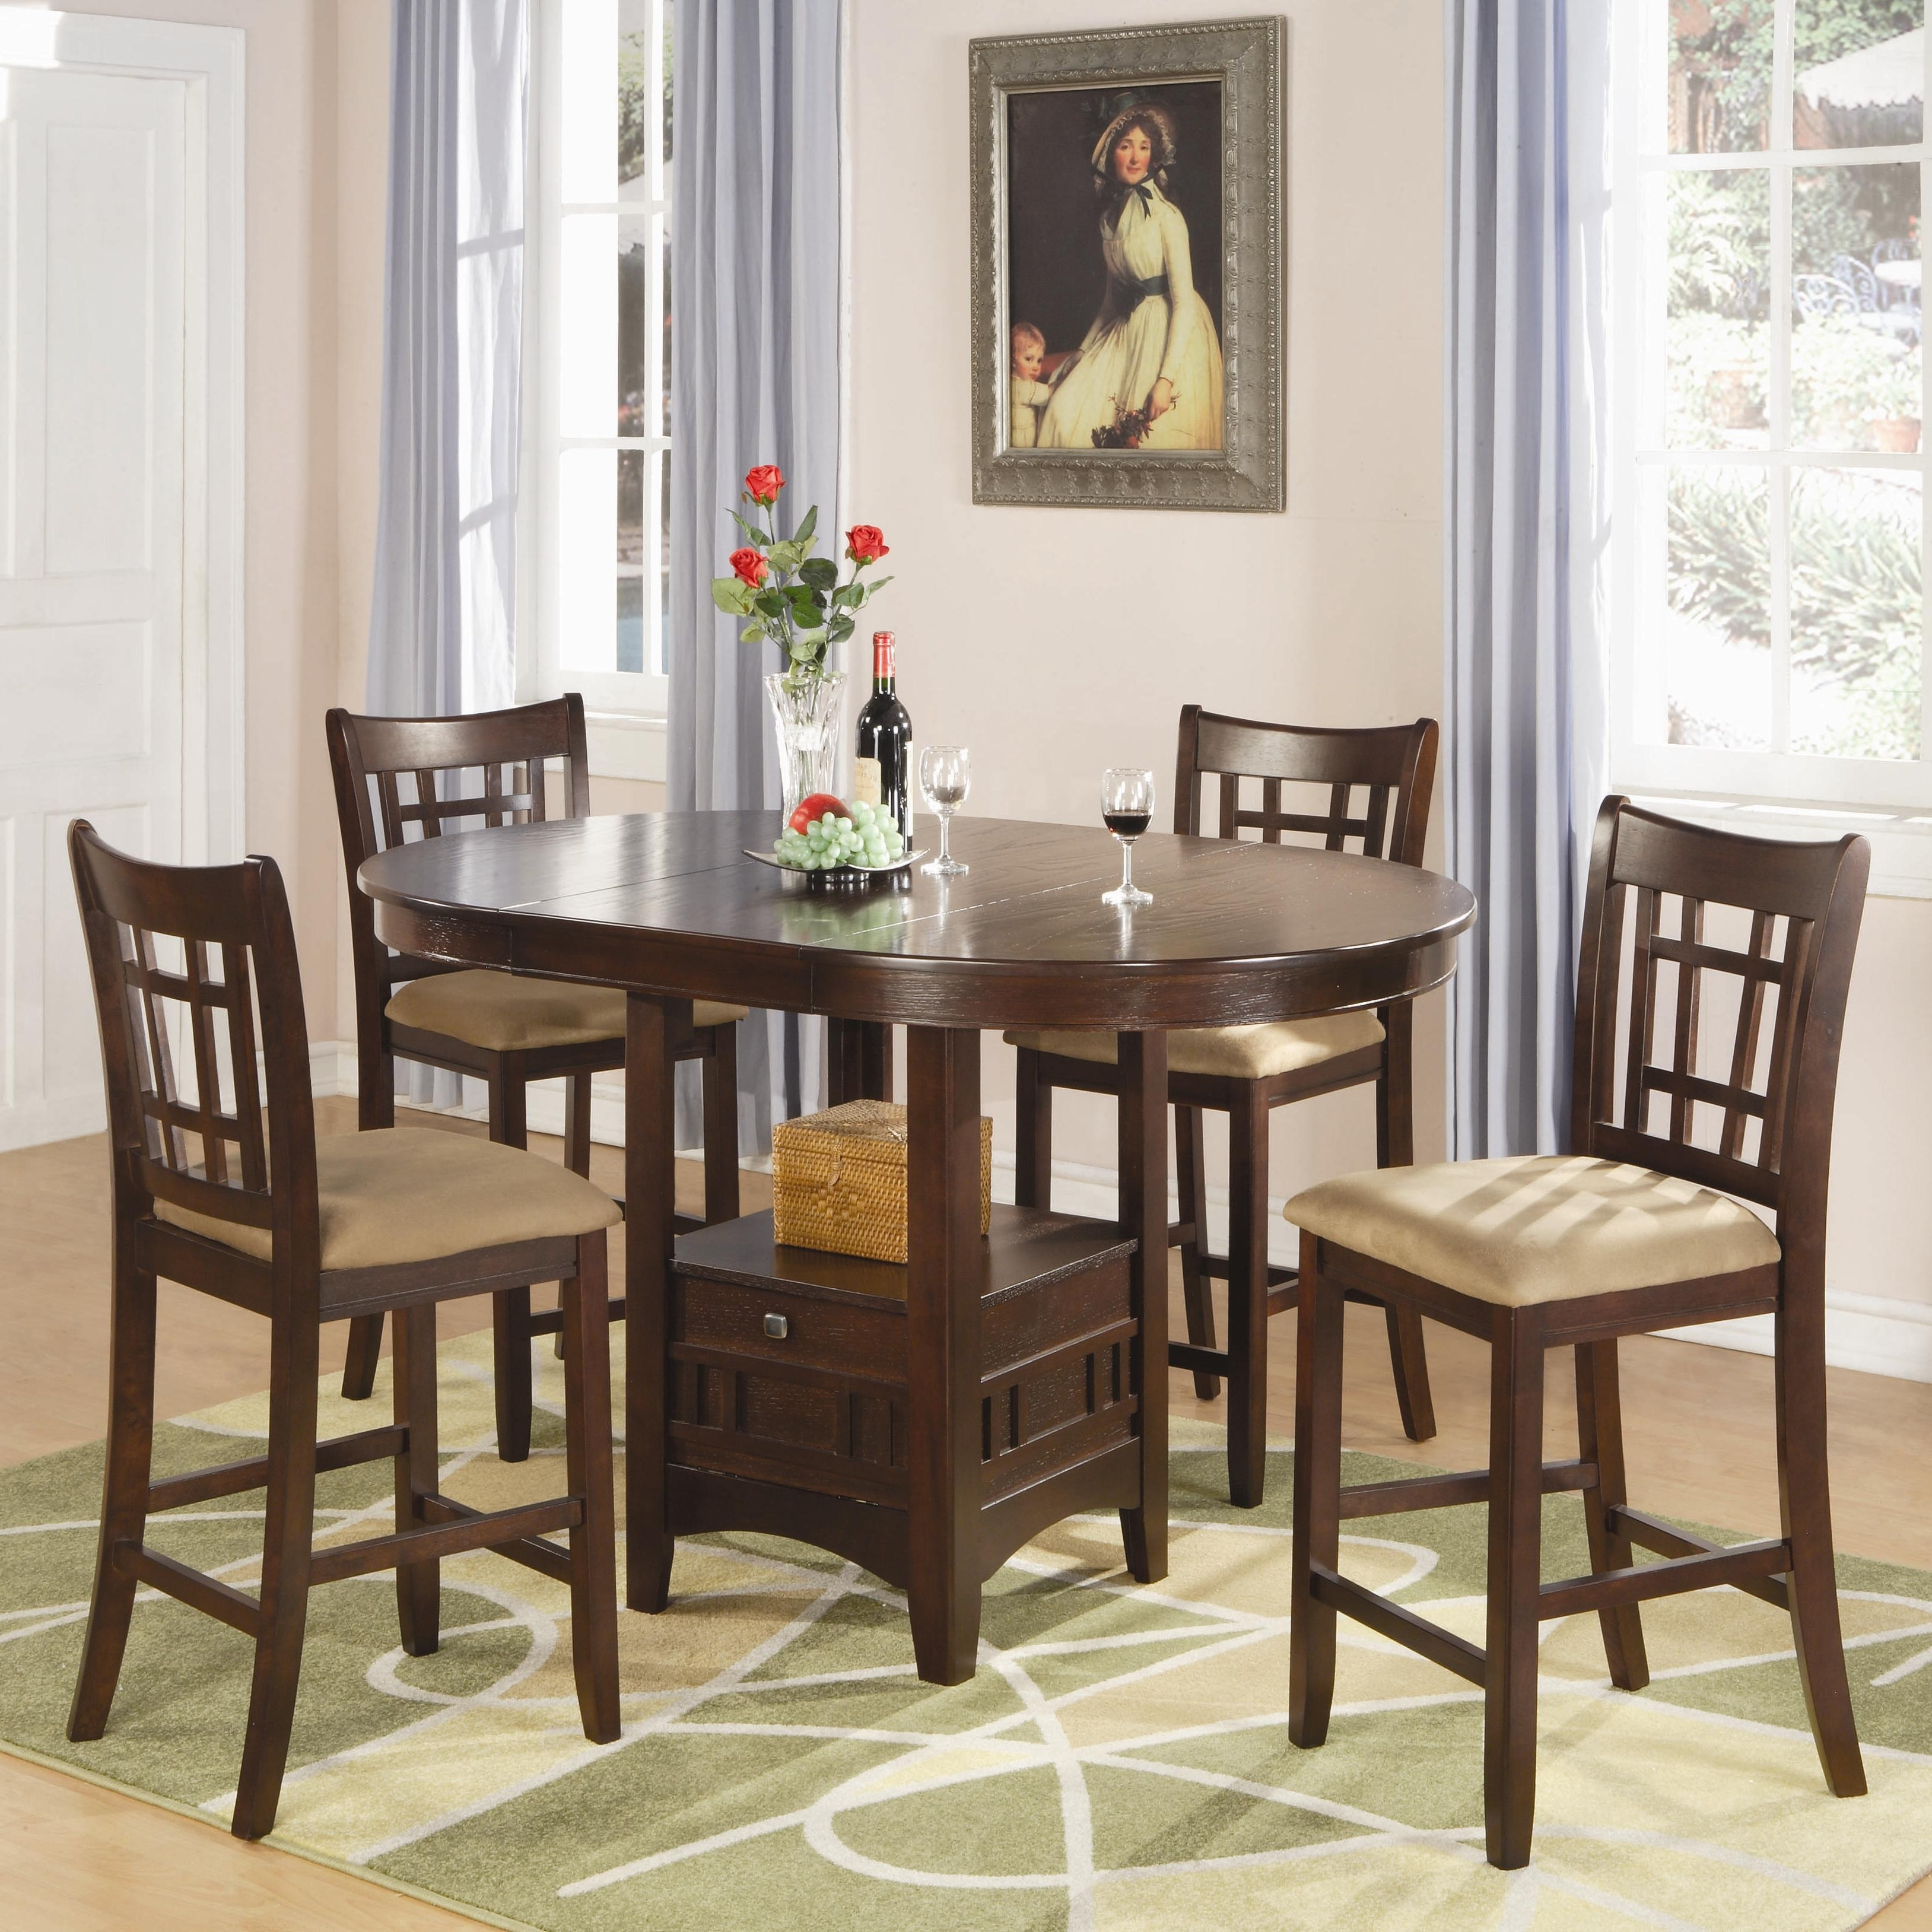 2017 Craftsman 5 Piece Round Dining Sets With Uph Side Chairs in Coaster - Find A Local Furniture Store With Coaster Fine Furniture